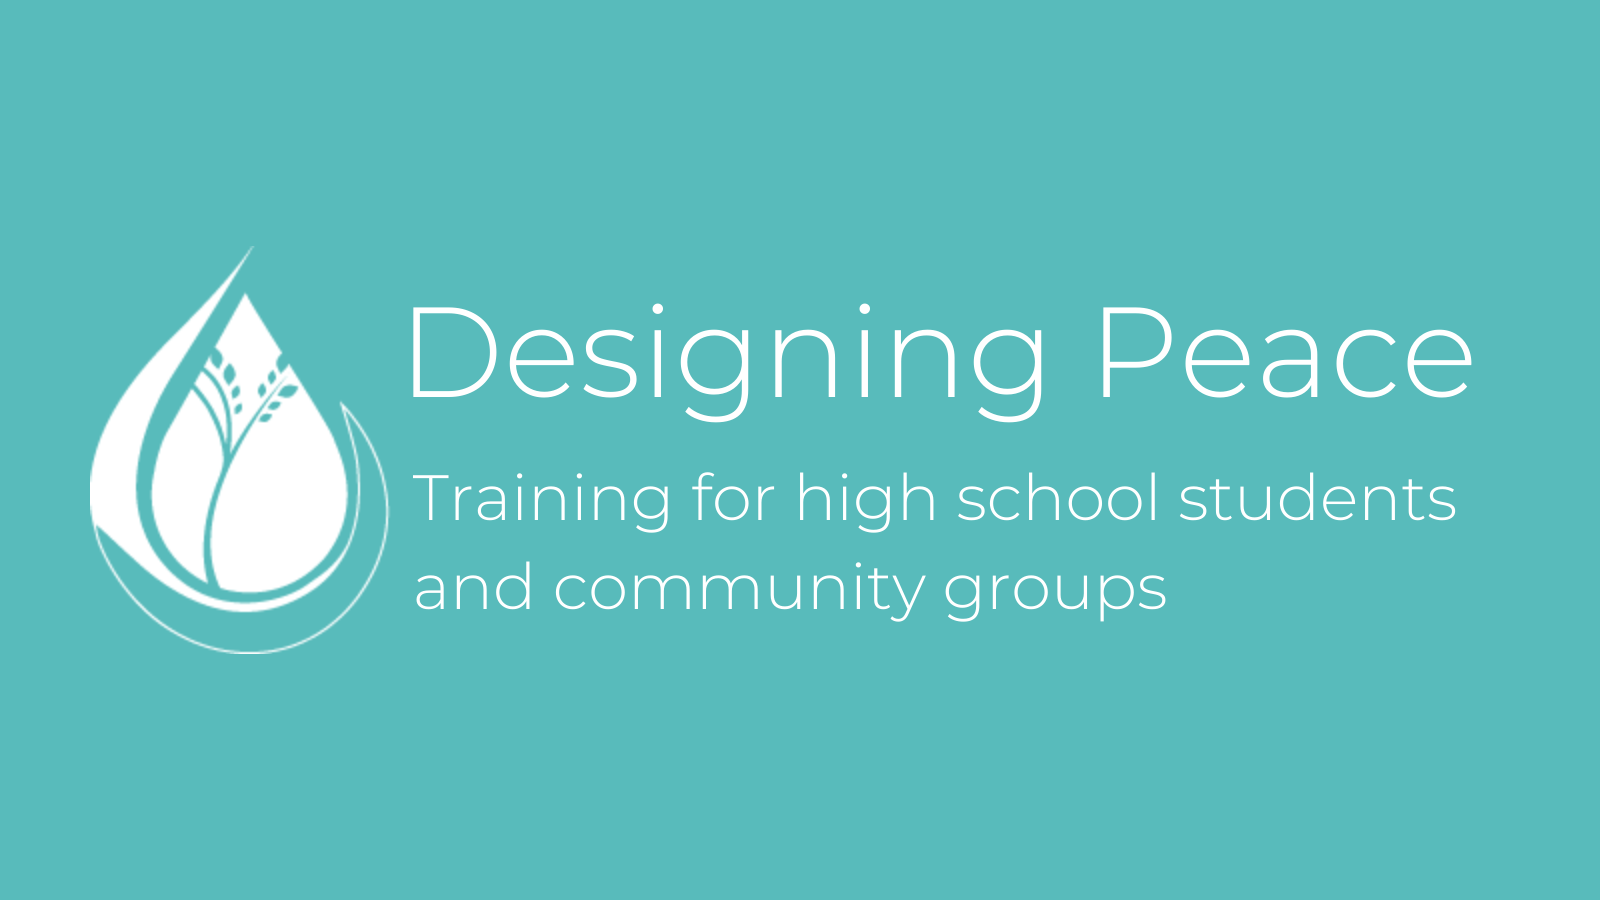 Designing Peace - Training for high school students and community groups